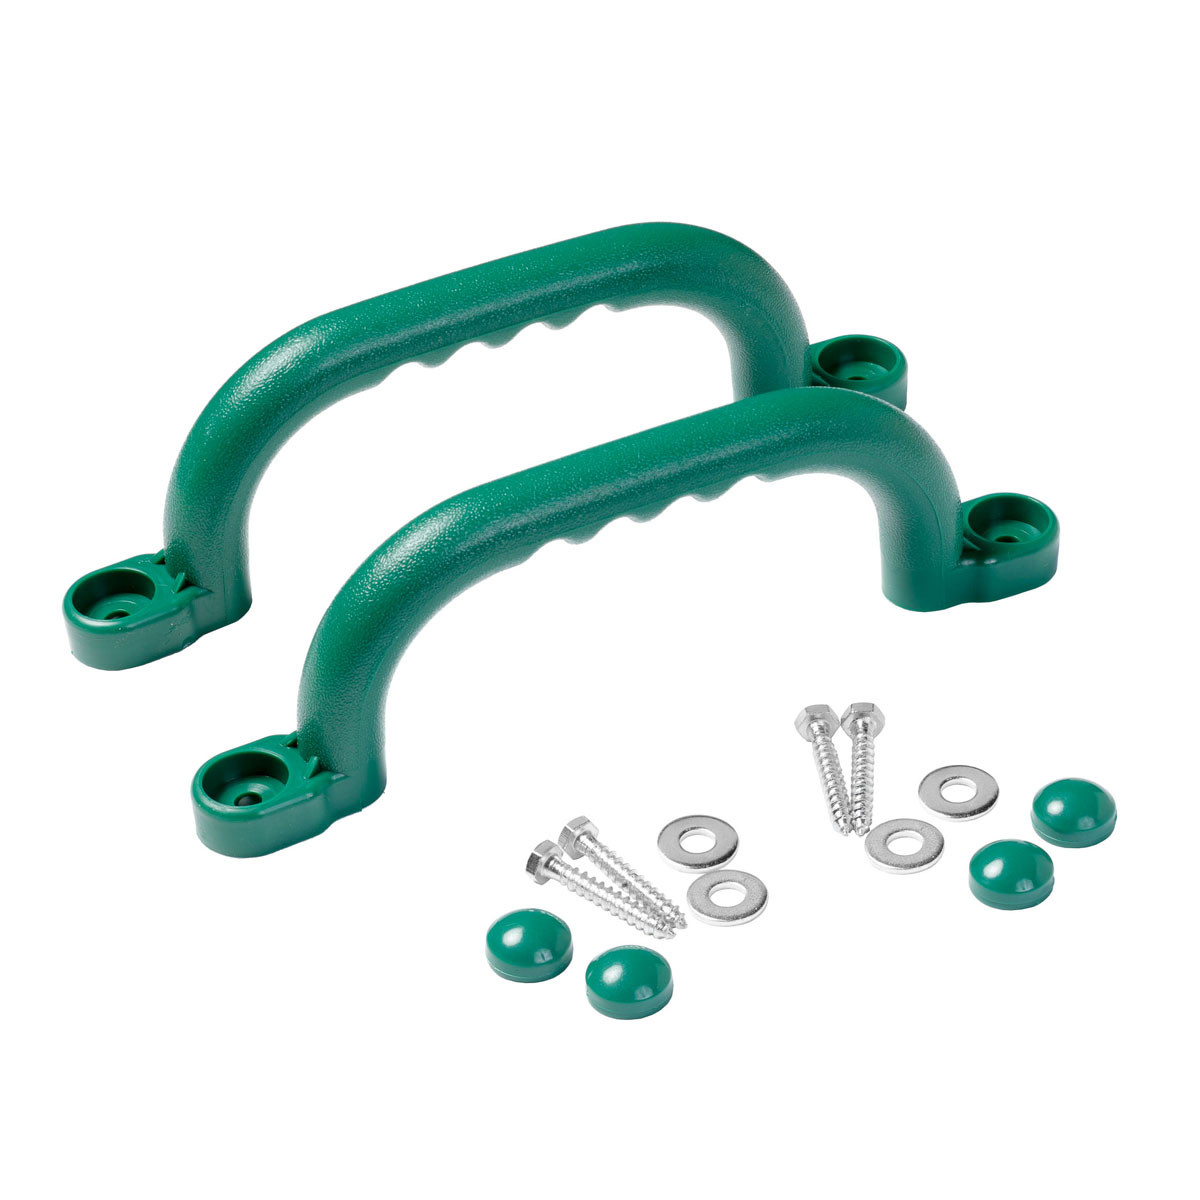 Hand Grip with Finger Ridges - HGR - Green